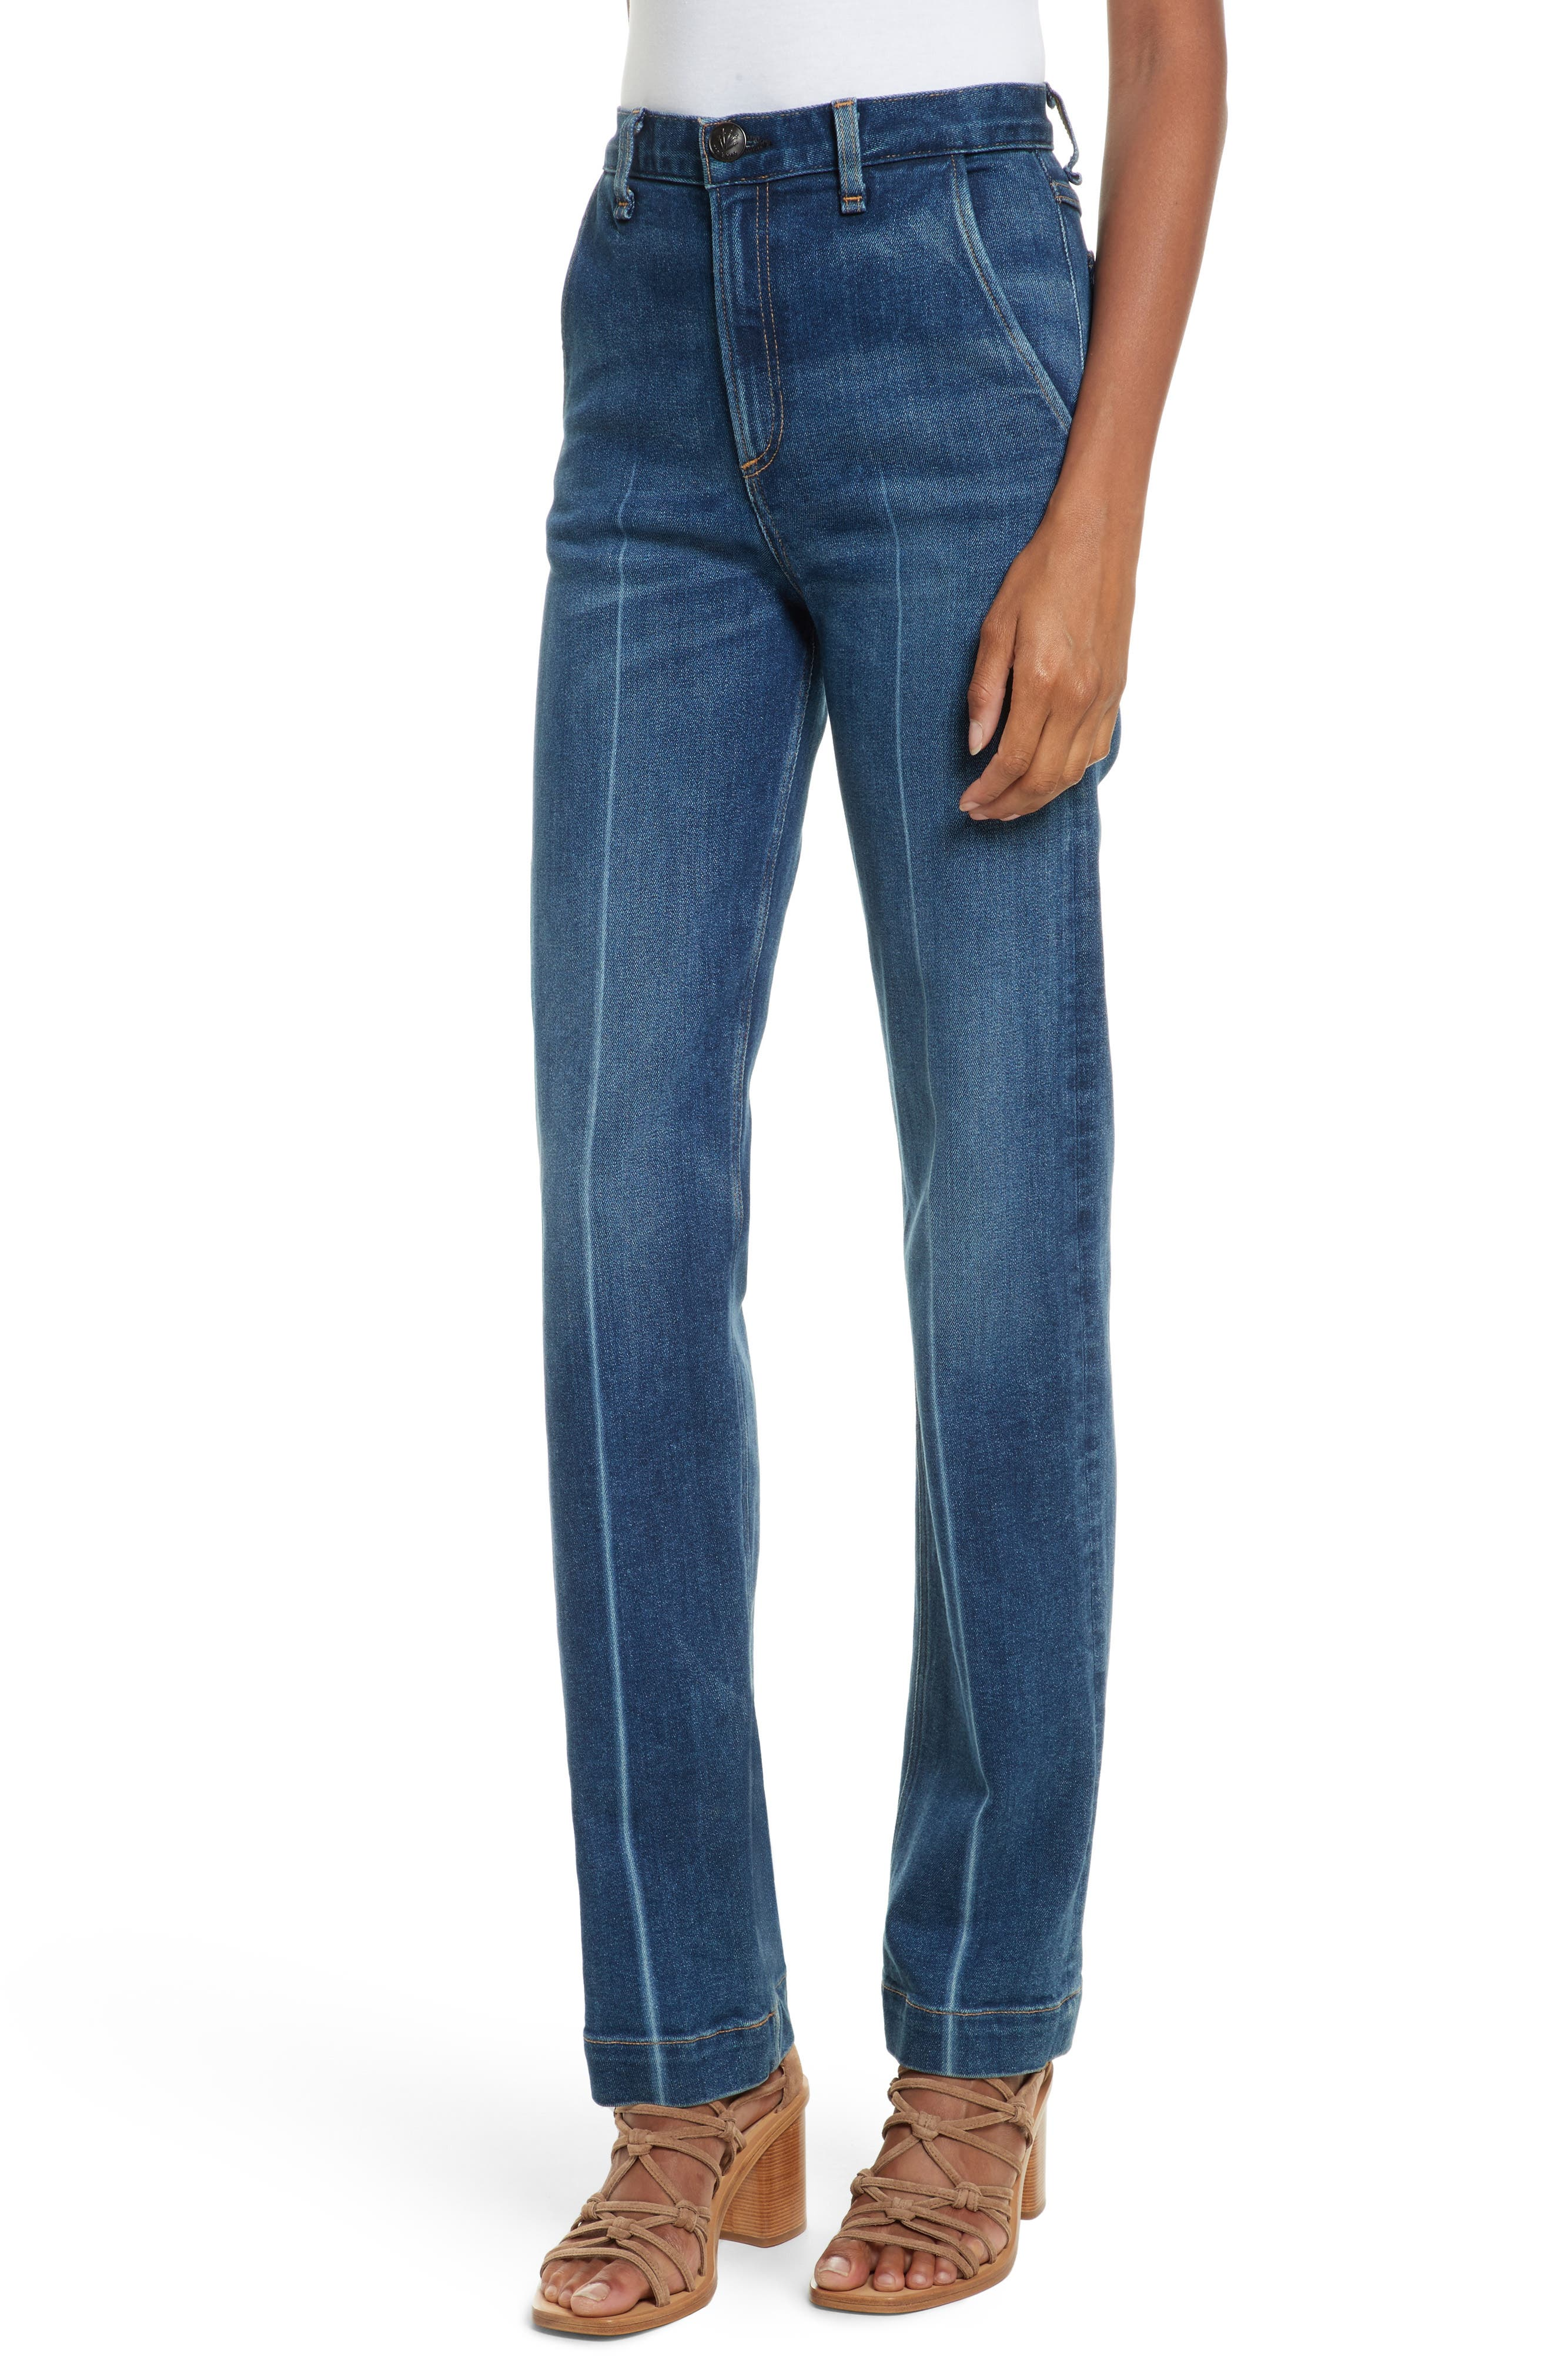 Main Image - rag & bone/JEAN Justine High Waist Trouser Jeans (Highwater)